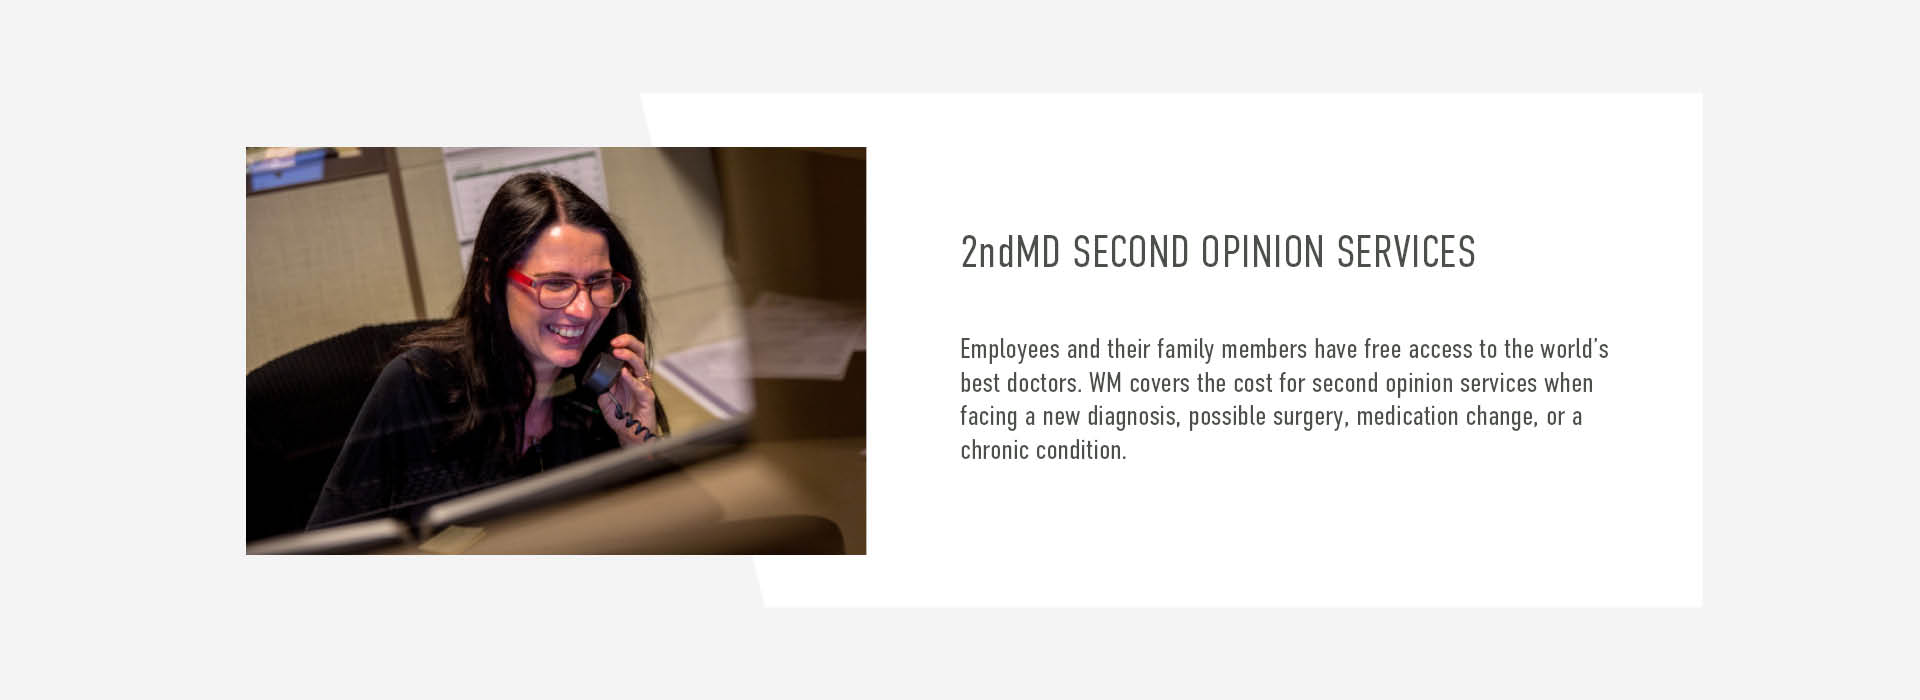 2ndMD SECOND OPINION SERVICES. Employees and their family members have free access to the world's best doctors. WM covers the cost for second opinion services when facing a new diagnosis, possible surgery, medication change, or a chronic condition.